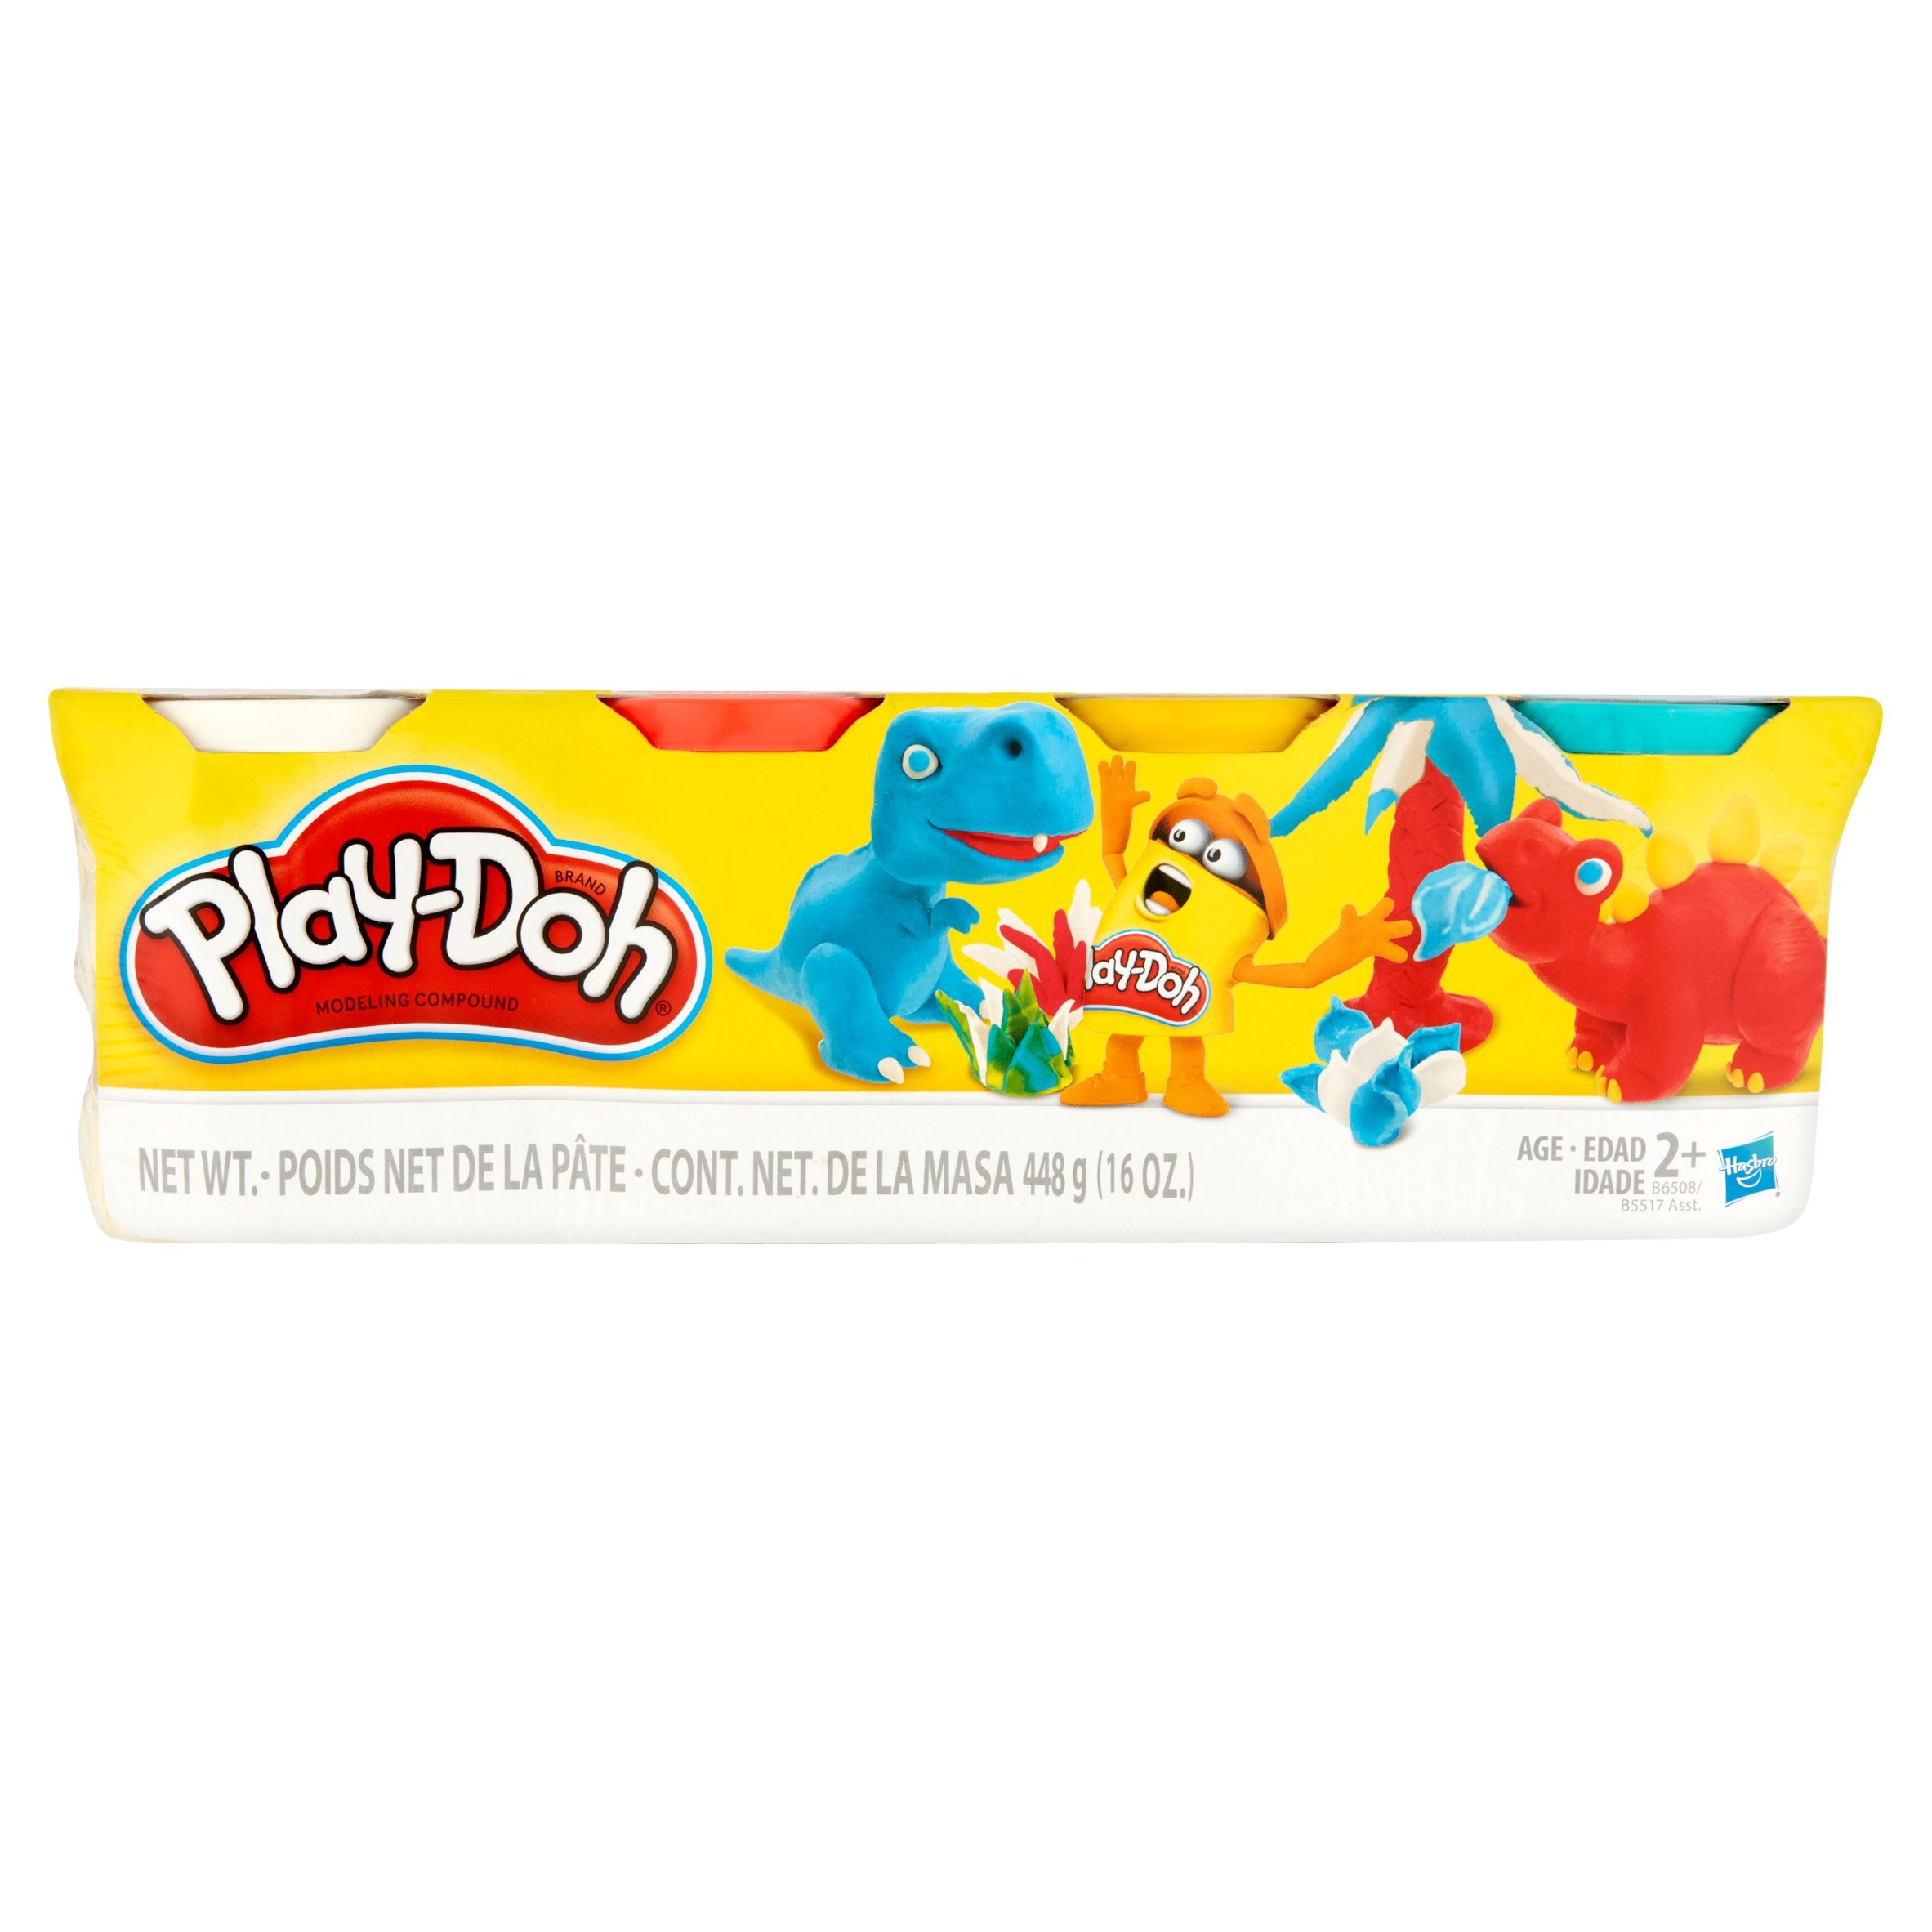 Play-Doh 4 Pack of Classic Colors: White, Red, Yellow & Blue, 16 oz